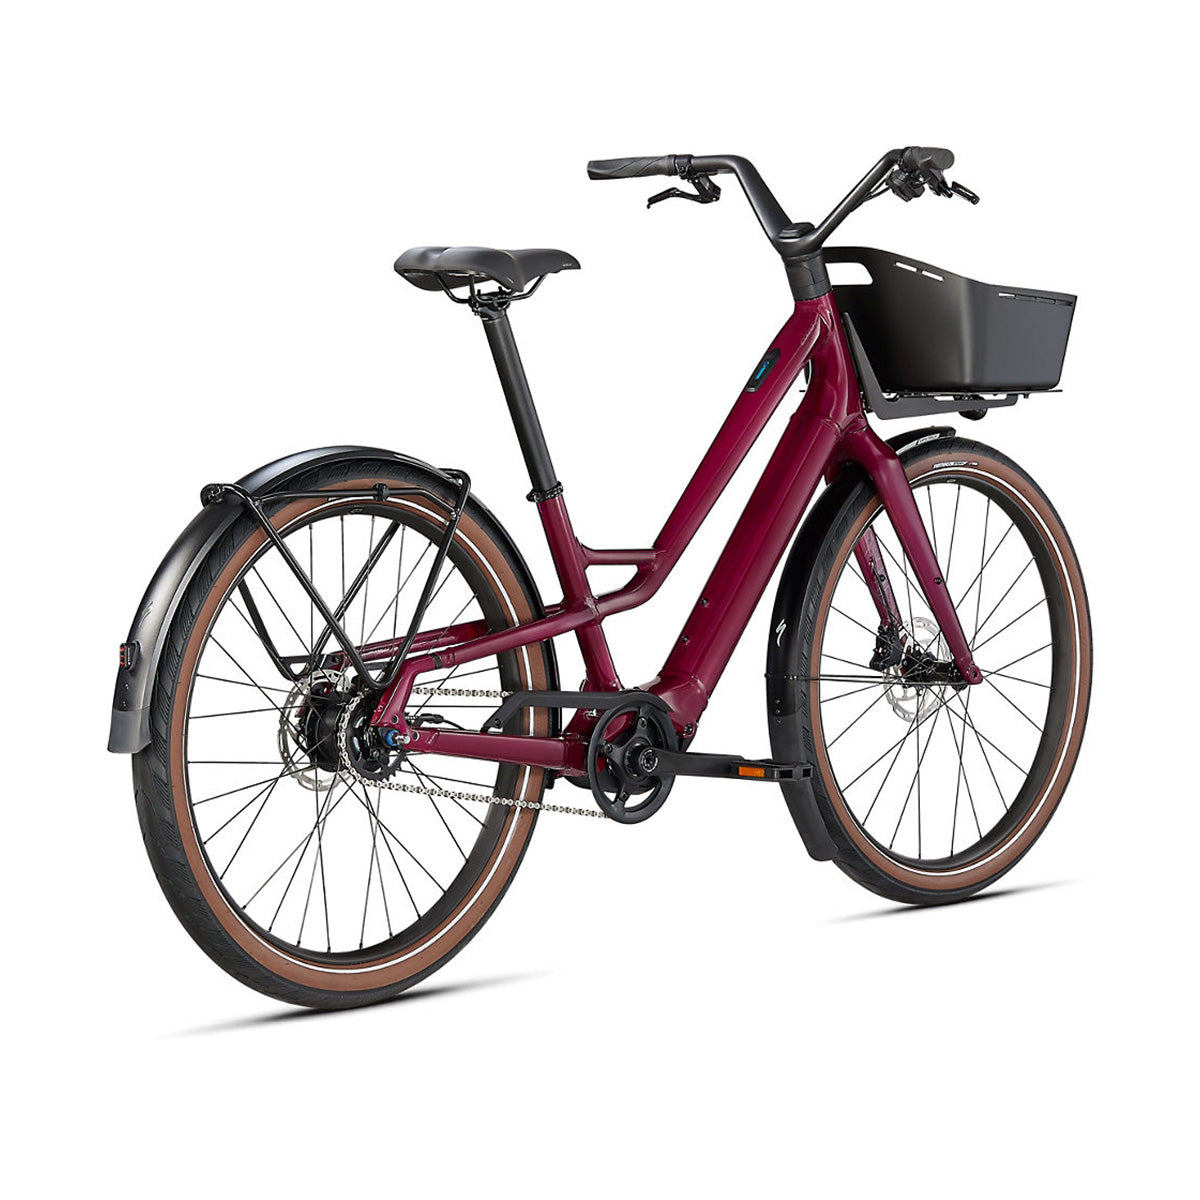 Specialized Turbo Como SL 4.0  Electric Hybrid Bike - 2022 Red